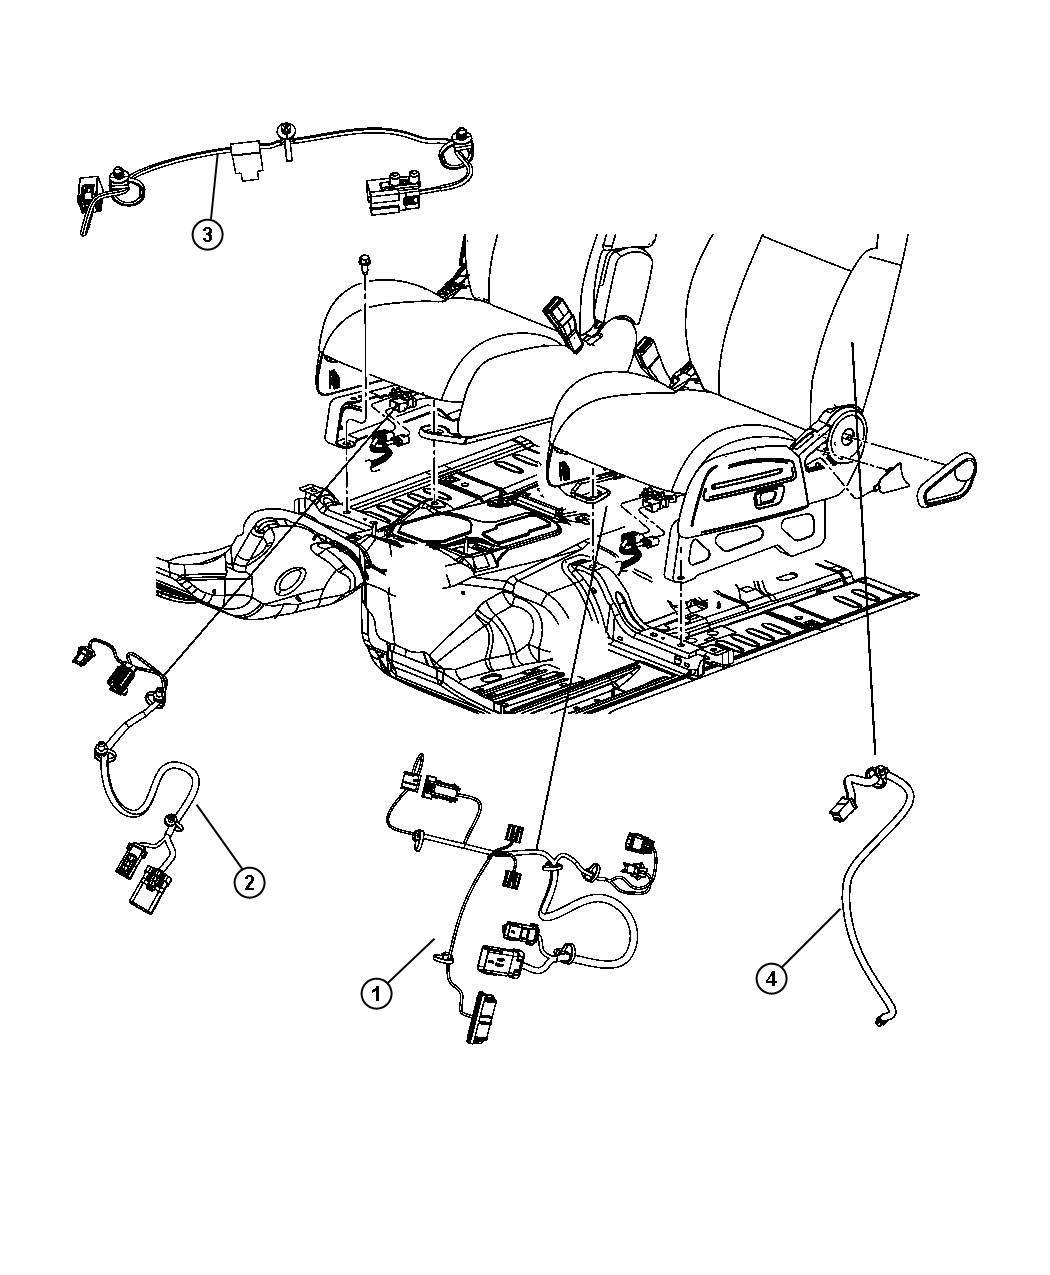 Jeep Patriot Wiring. Seat. Fold flat seat, side air bag